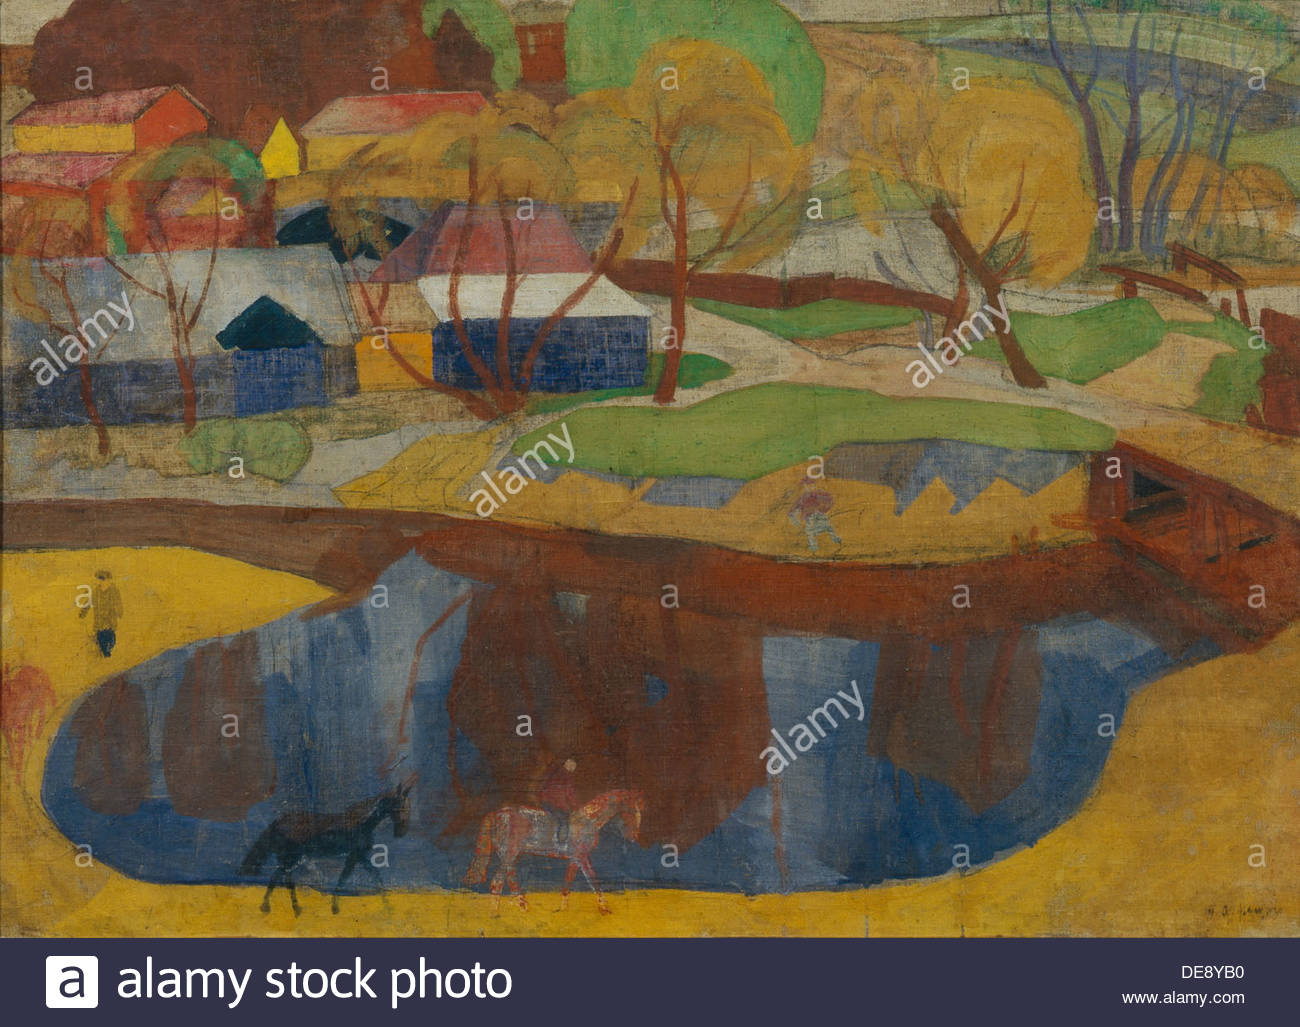 A mill pond, 1920. Artist: Frenz, Rudolph Rudolphovich (1888-1956) Stock Photo